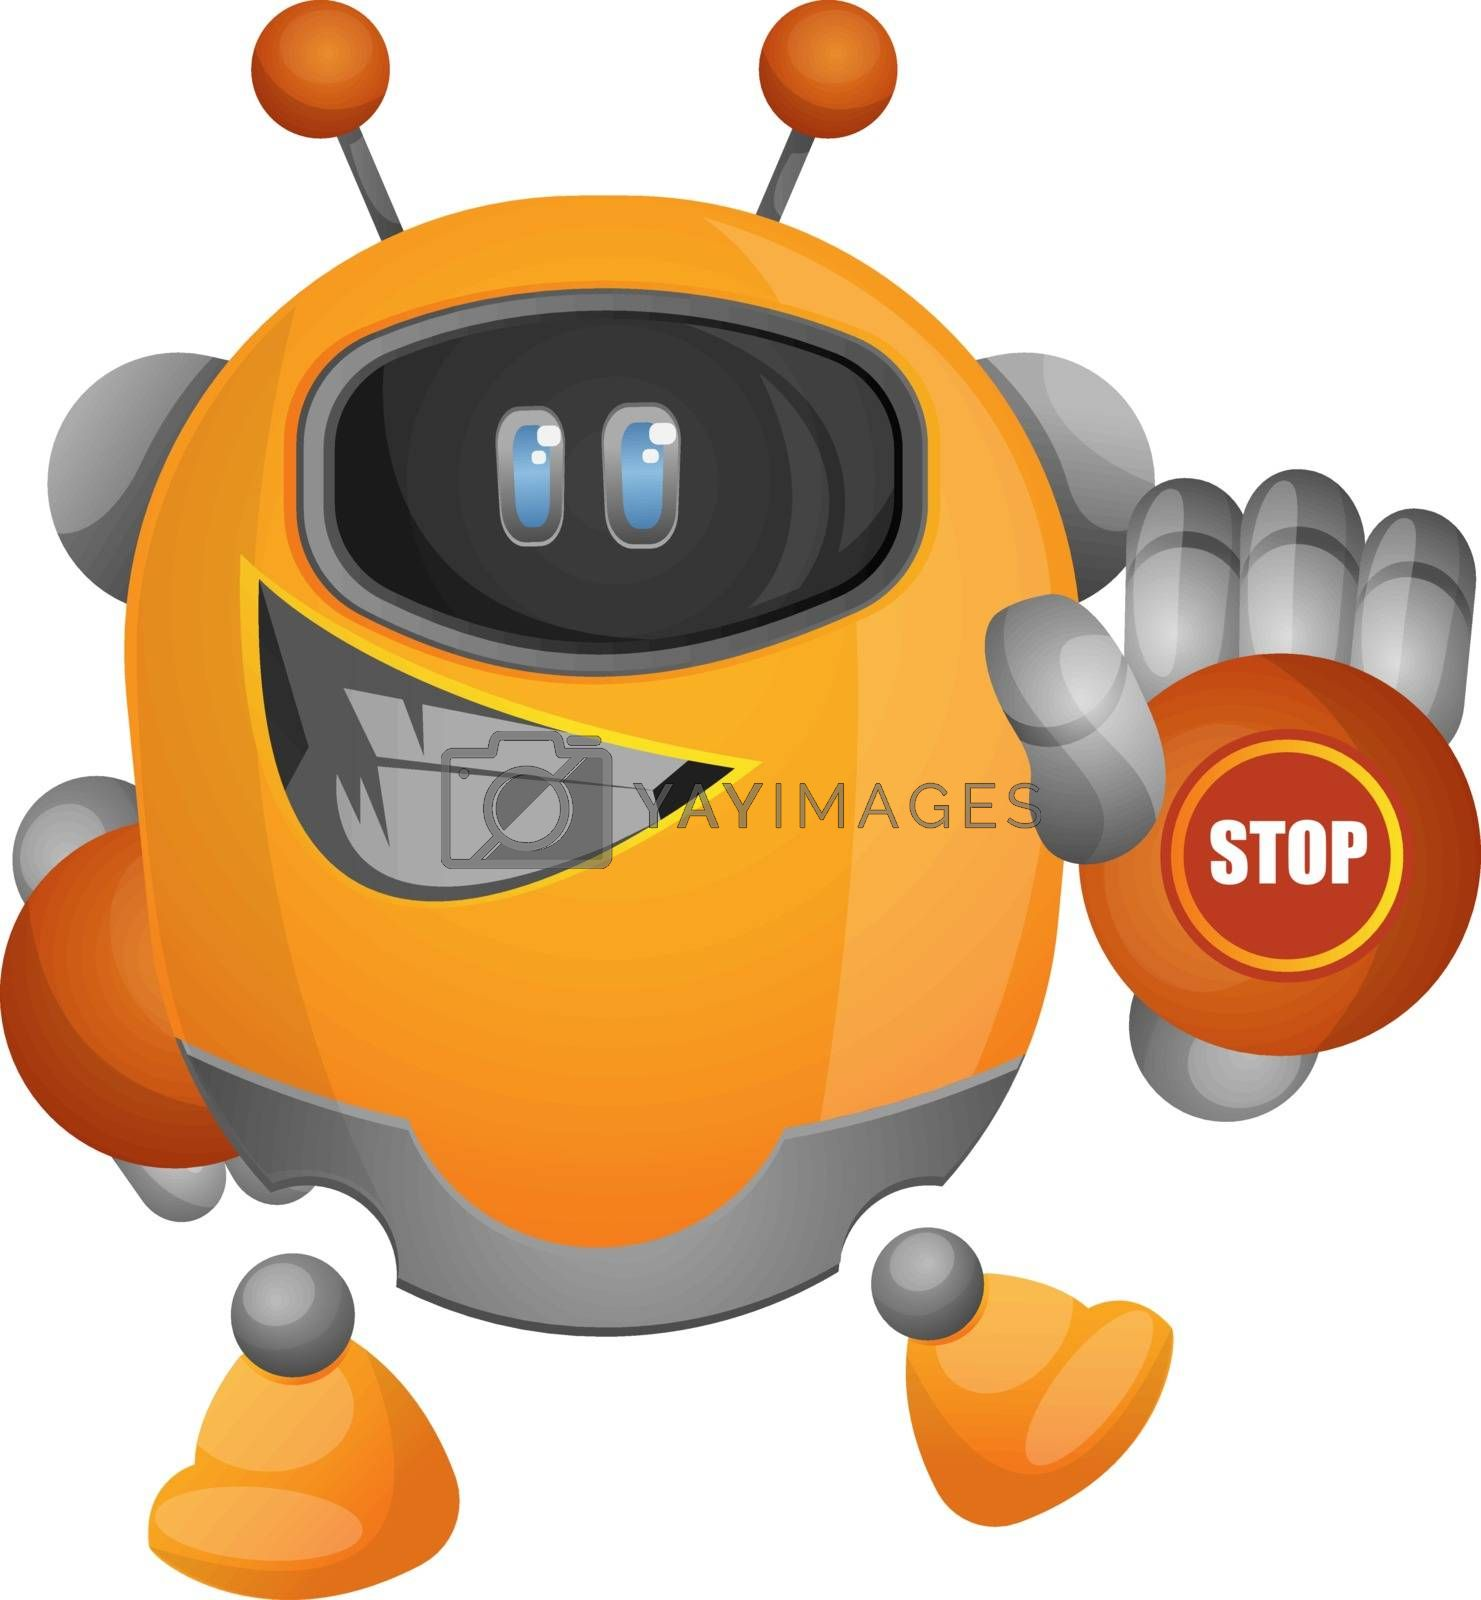 Royalty free image of Cartoon robot with a stop sign on hand illustration vector on wh by Morphart